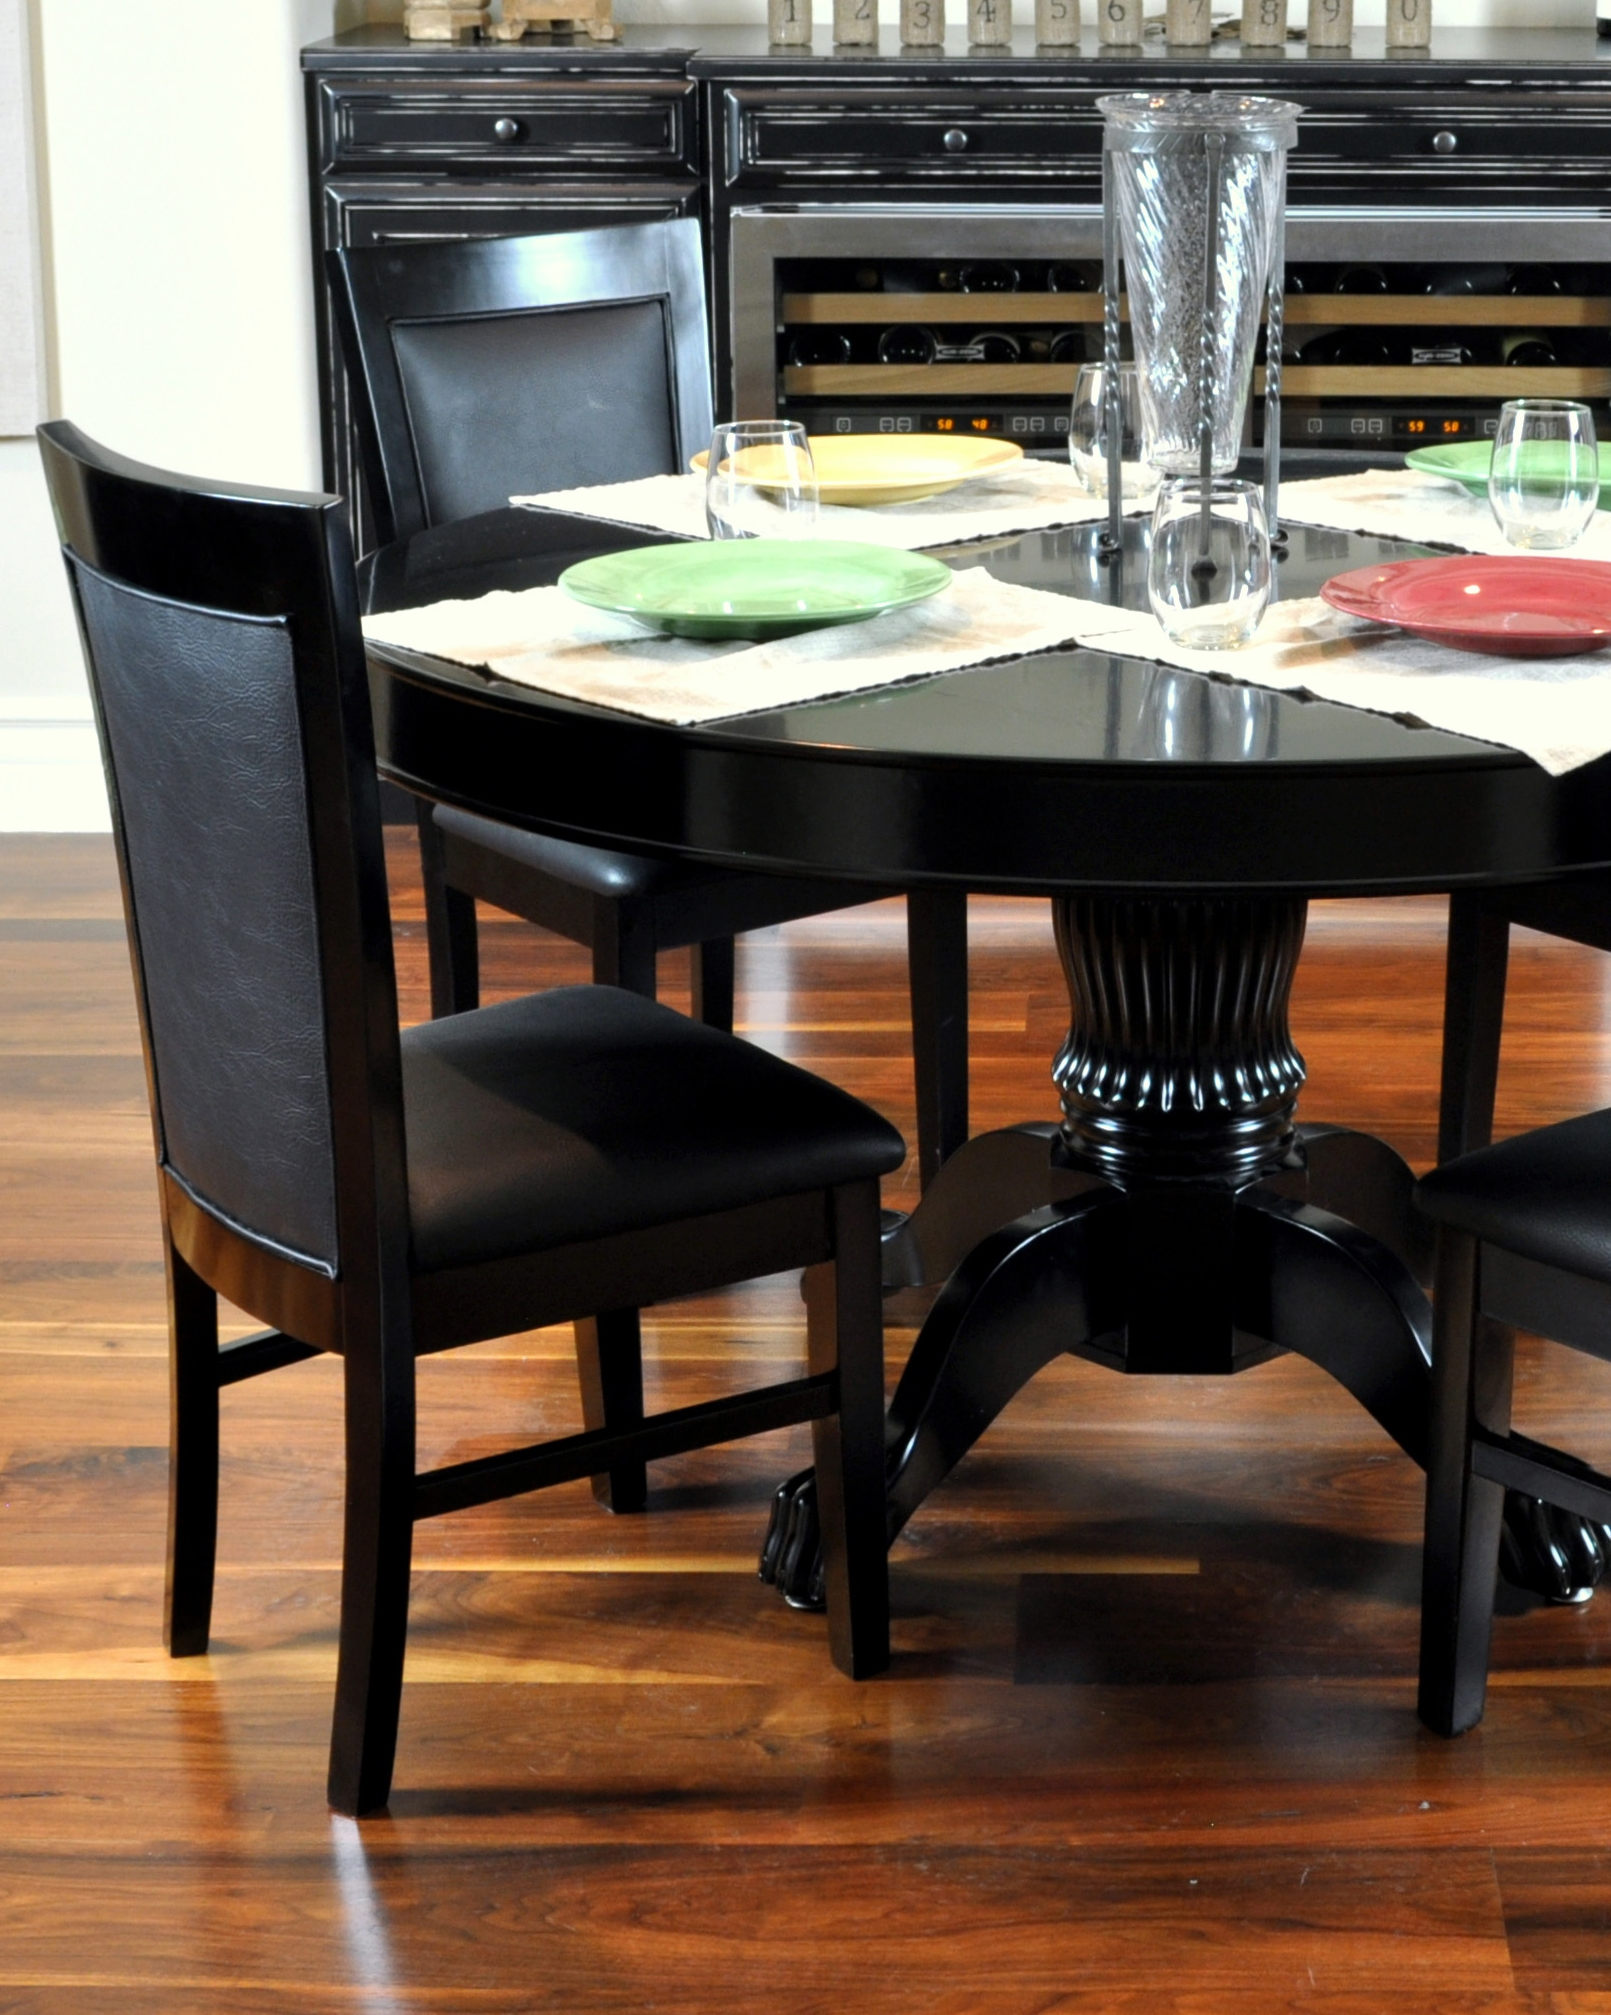 Nighthawk Round Poker Table – Wel e to Poker Tables Canada